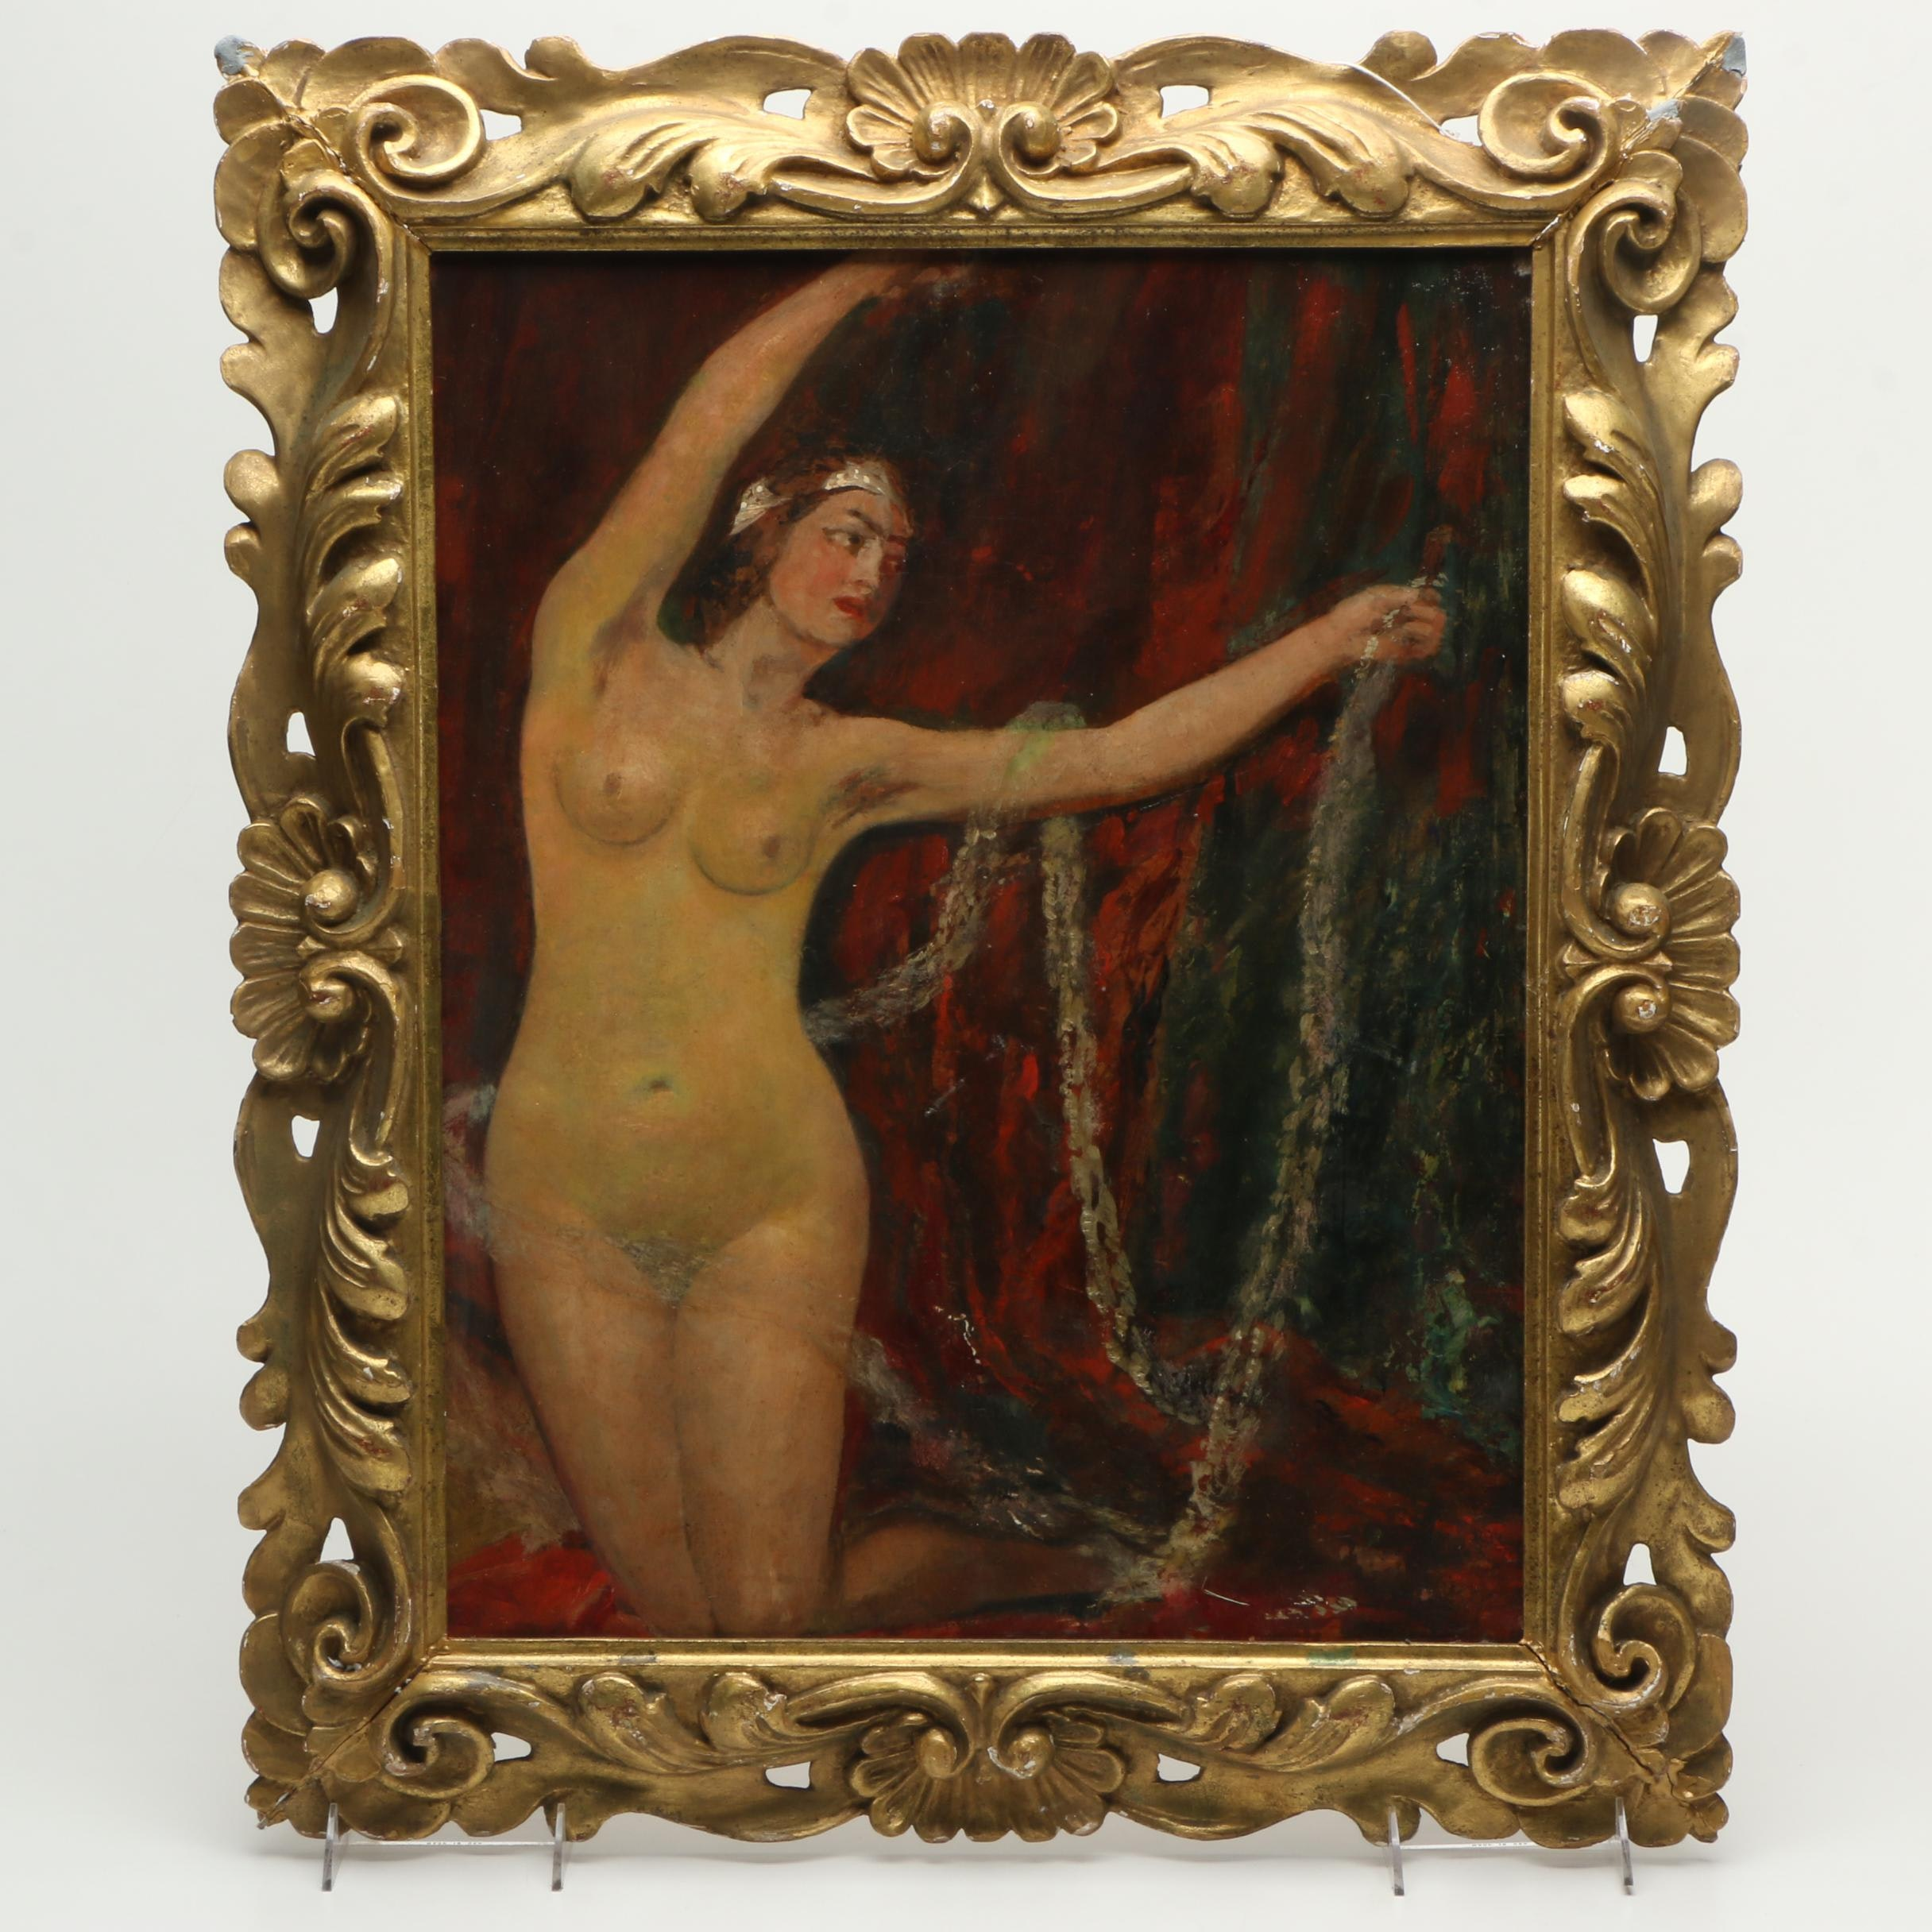 Oil Painting on Masonite In the Manner of William Etty